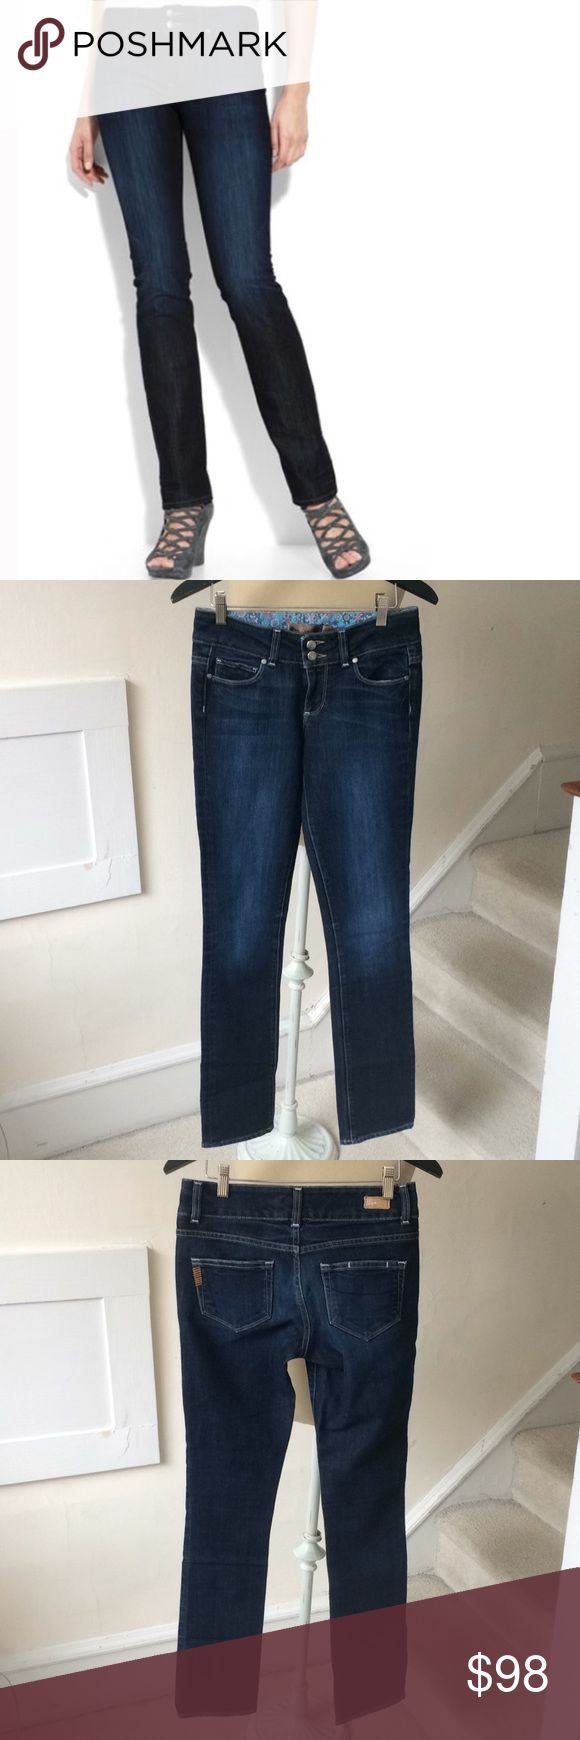 """Paige Denim Hidden Hills Jeans- Charm Wash NWOT Paige Premium Denim """"Hidden Hills"""" jeans in Charm wash. High waist, dark wash stretchy jeans with two buttons at waist and subtle fading through seat and thighs. Straight cut with semi-distressed hems. Zips y, 5 pocket style. Approx. inseam 32"""" with 8 1/2"""" rise. Cotton and polyester blend. Size 26 in excellent condition. A37 PAIGE Jeans Straight Leg"""